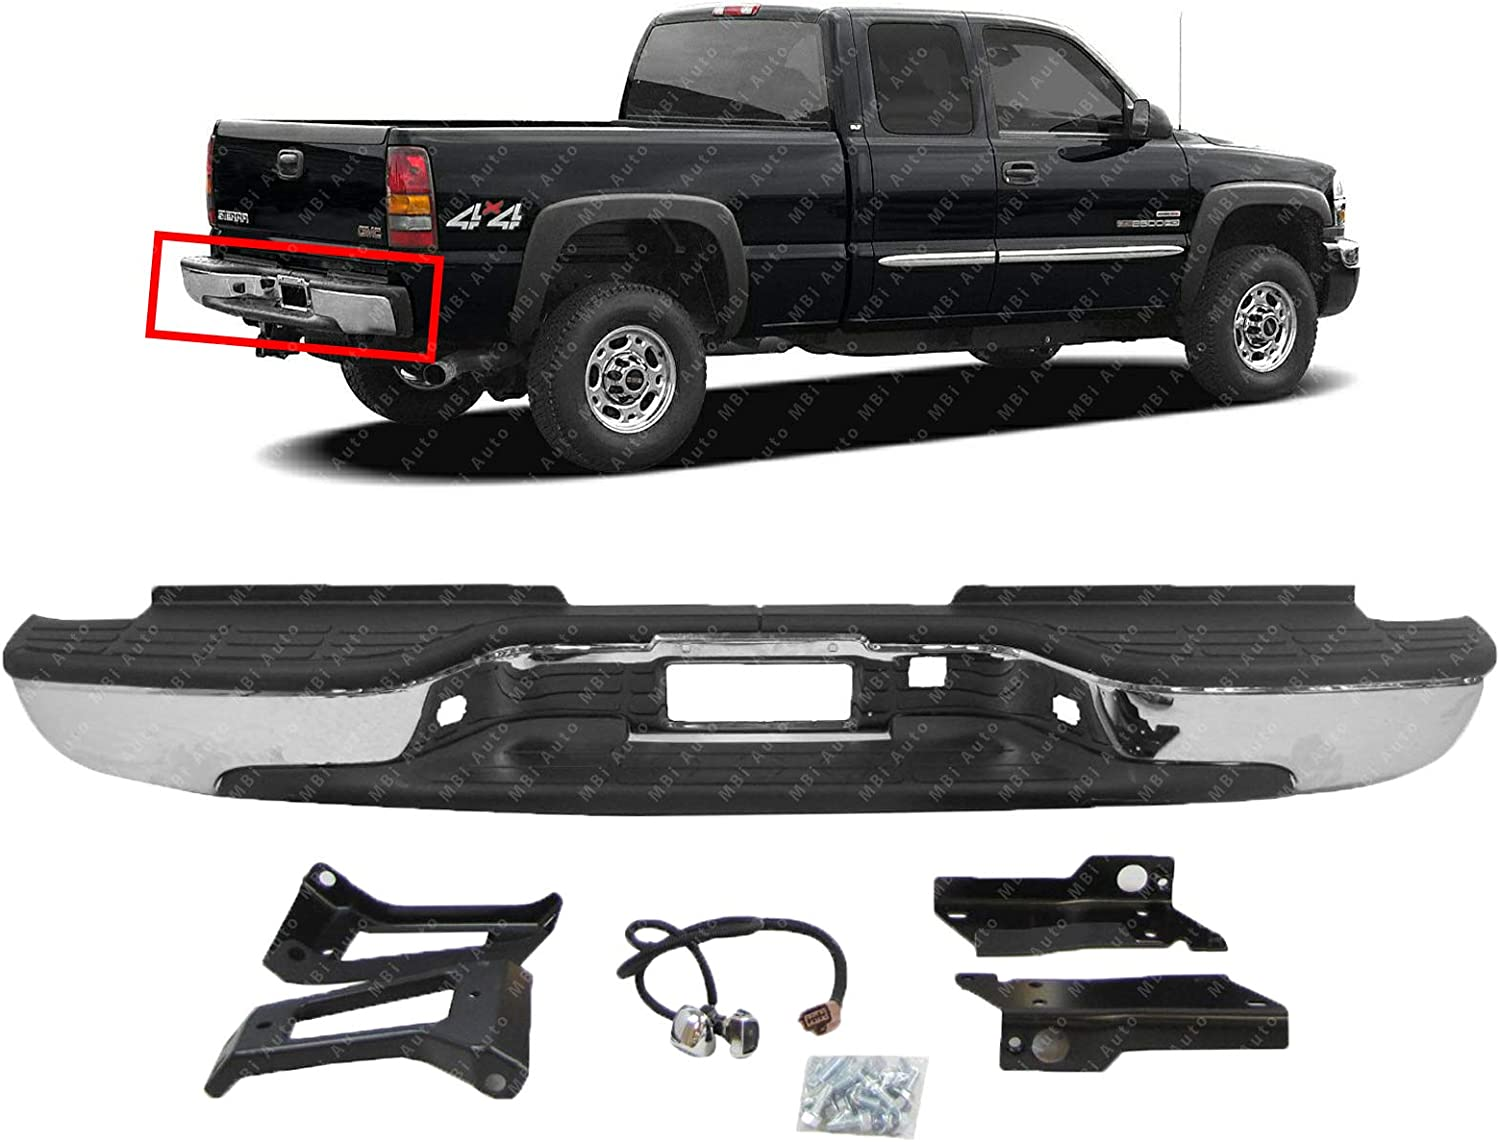 Chrome Steel BUMPERS THAT DELIVER Rear Step Bumper Assembly for 1999-2006 Chevy Silverado /& GMC Sierra 2500 3500 HD /& 2007 Classic Pickup GM1103129